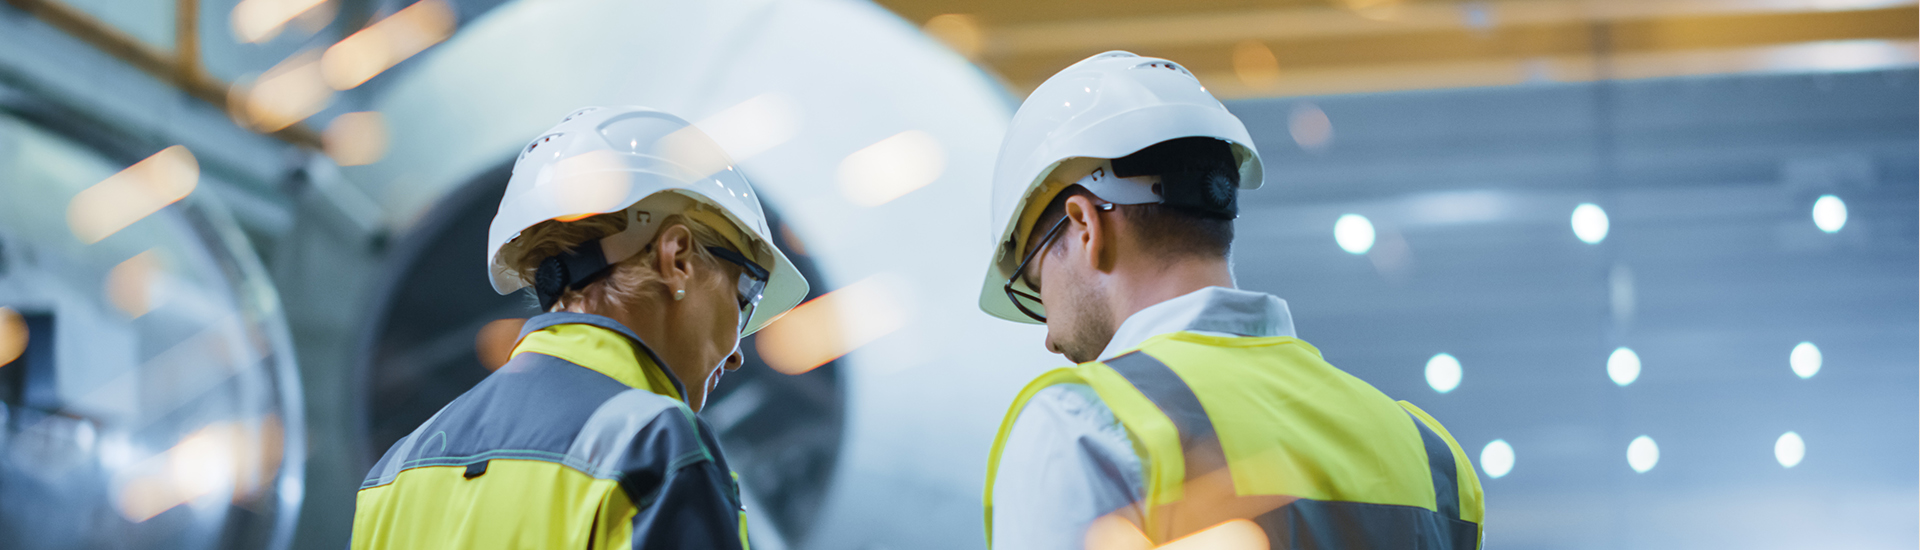 Manufacturers- Are You Tired of Employee Attrition? Take These Three Critical Steps